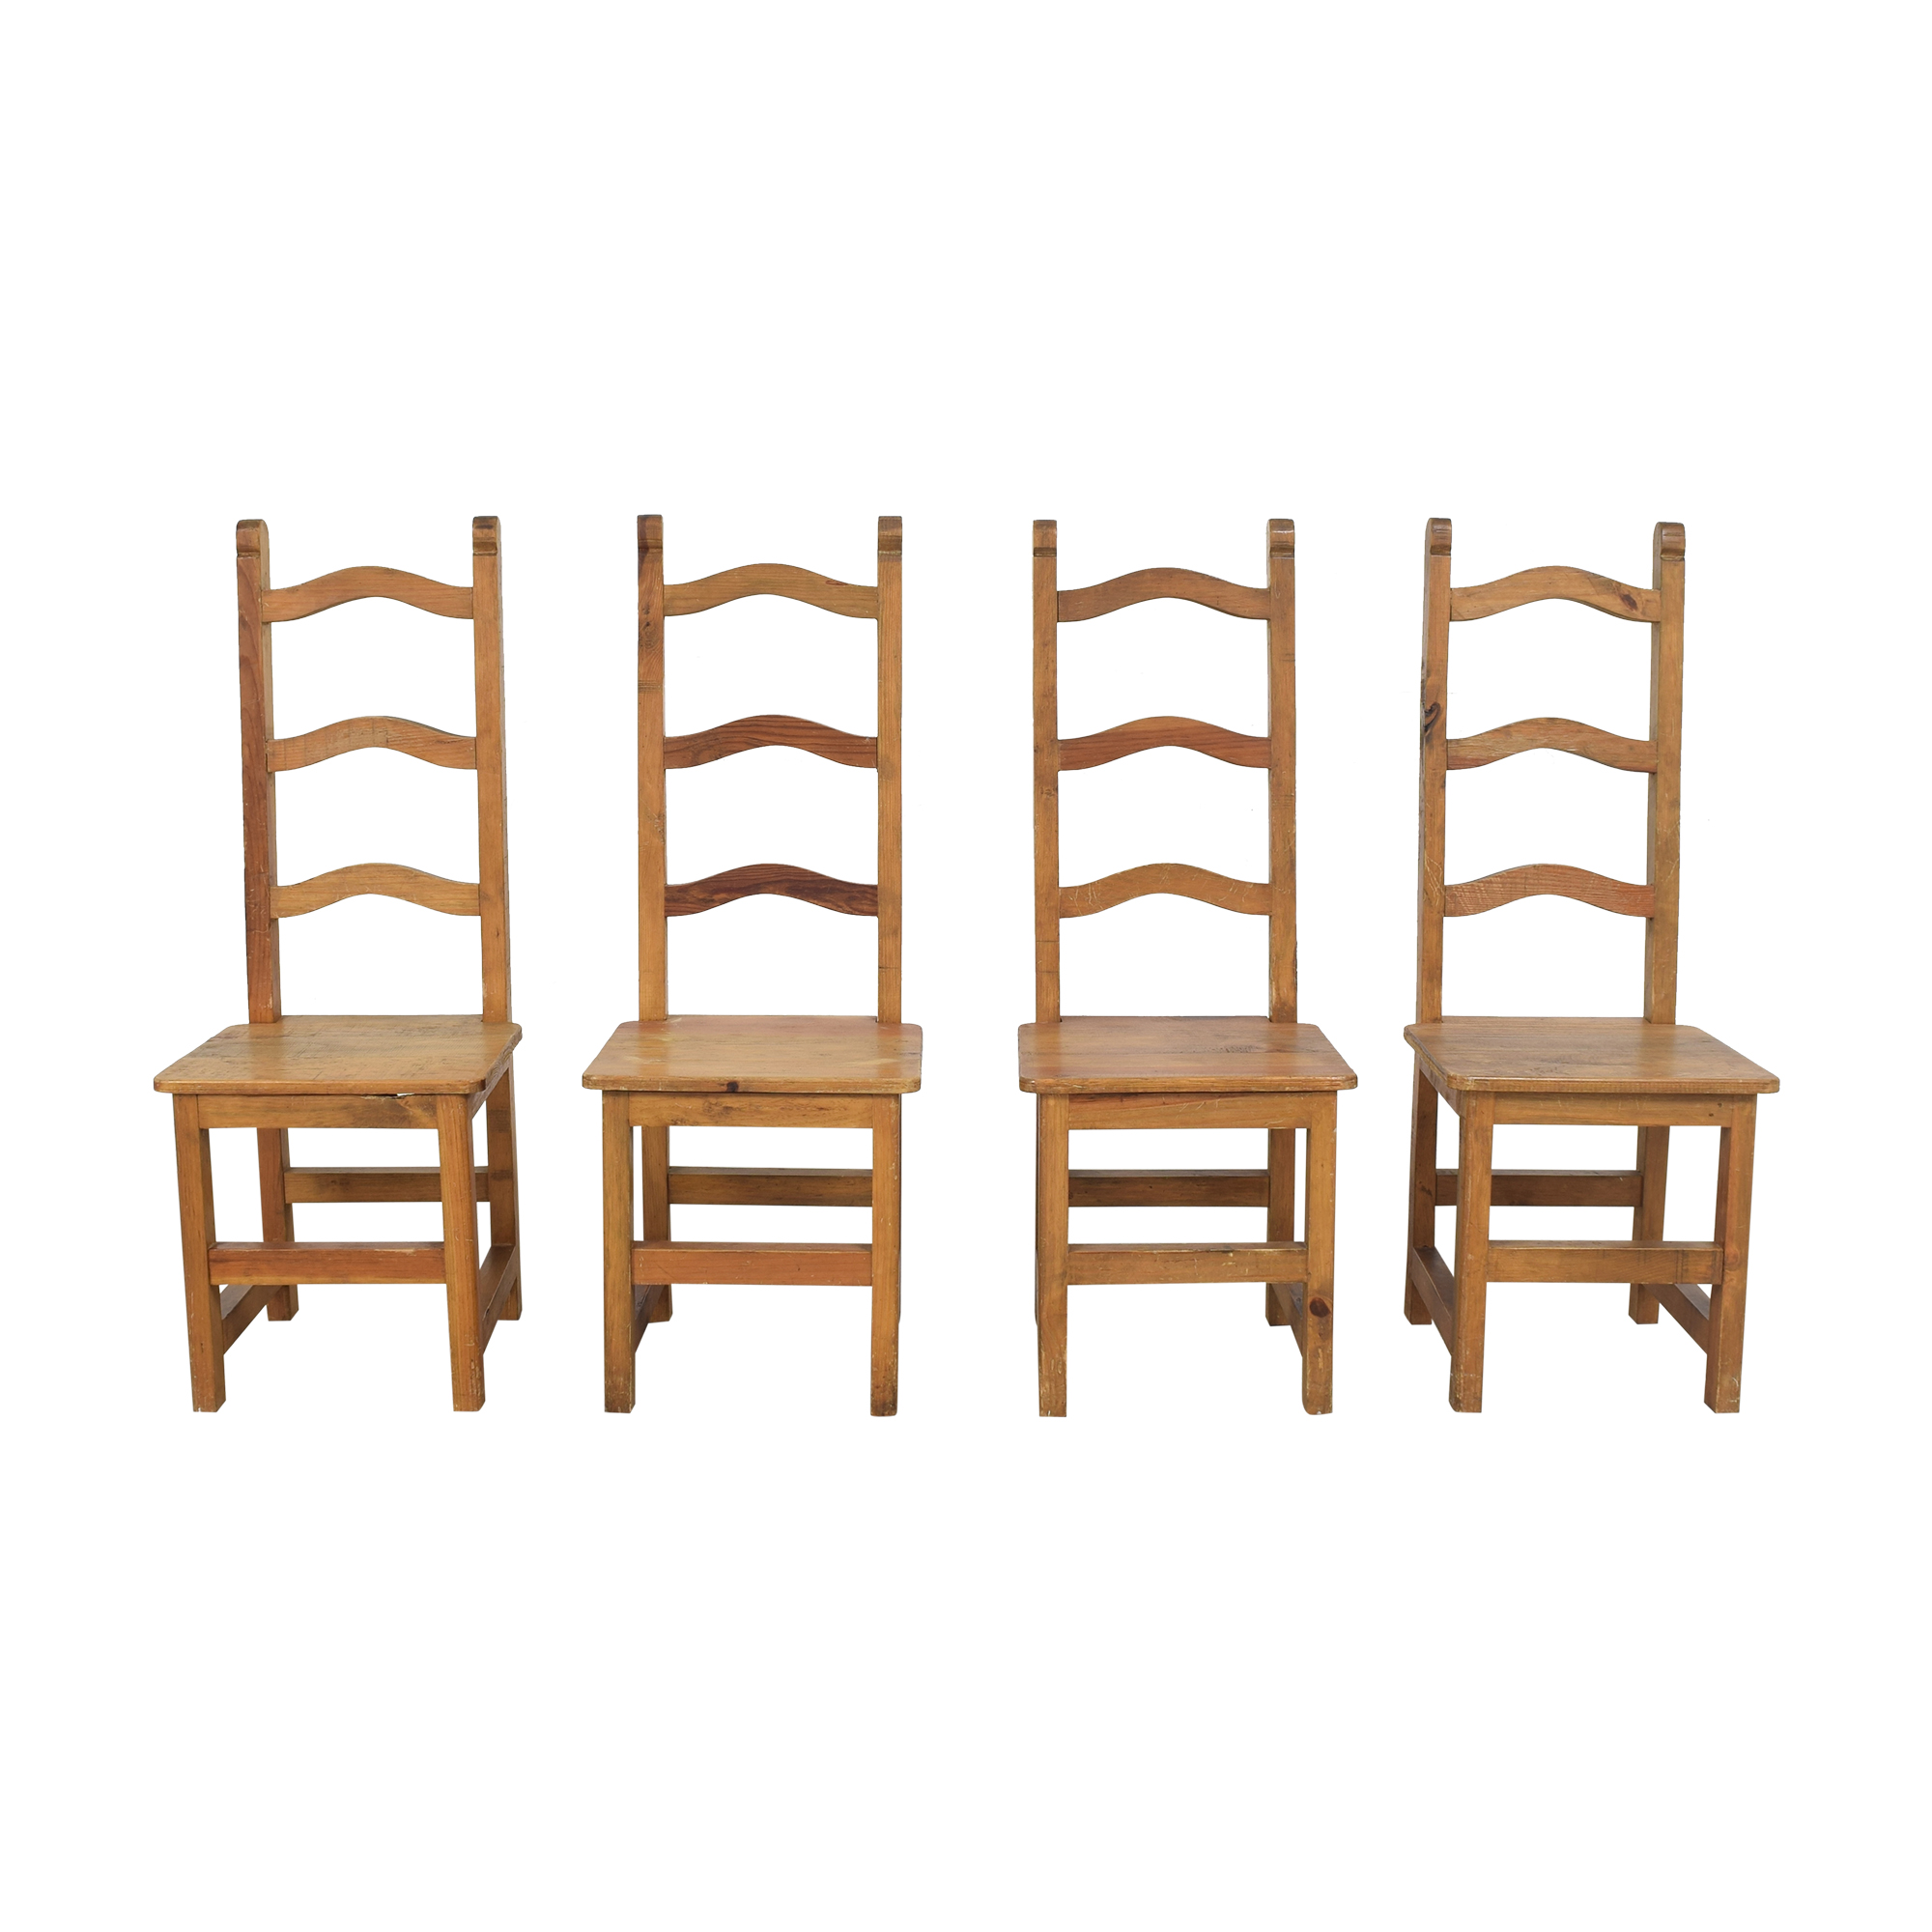 ABC Carpet & Home ABC Carpet & Home Ladderback Dining Chairs Dining Chairs